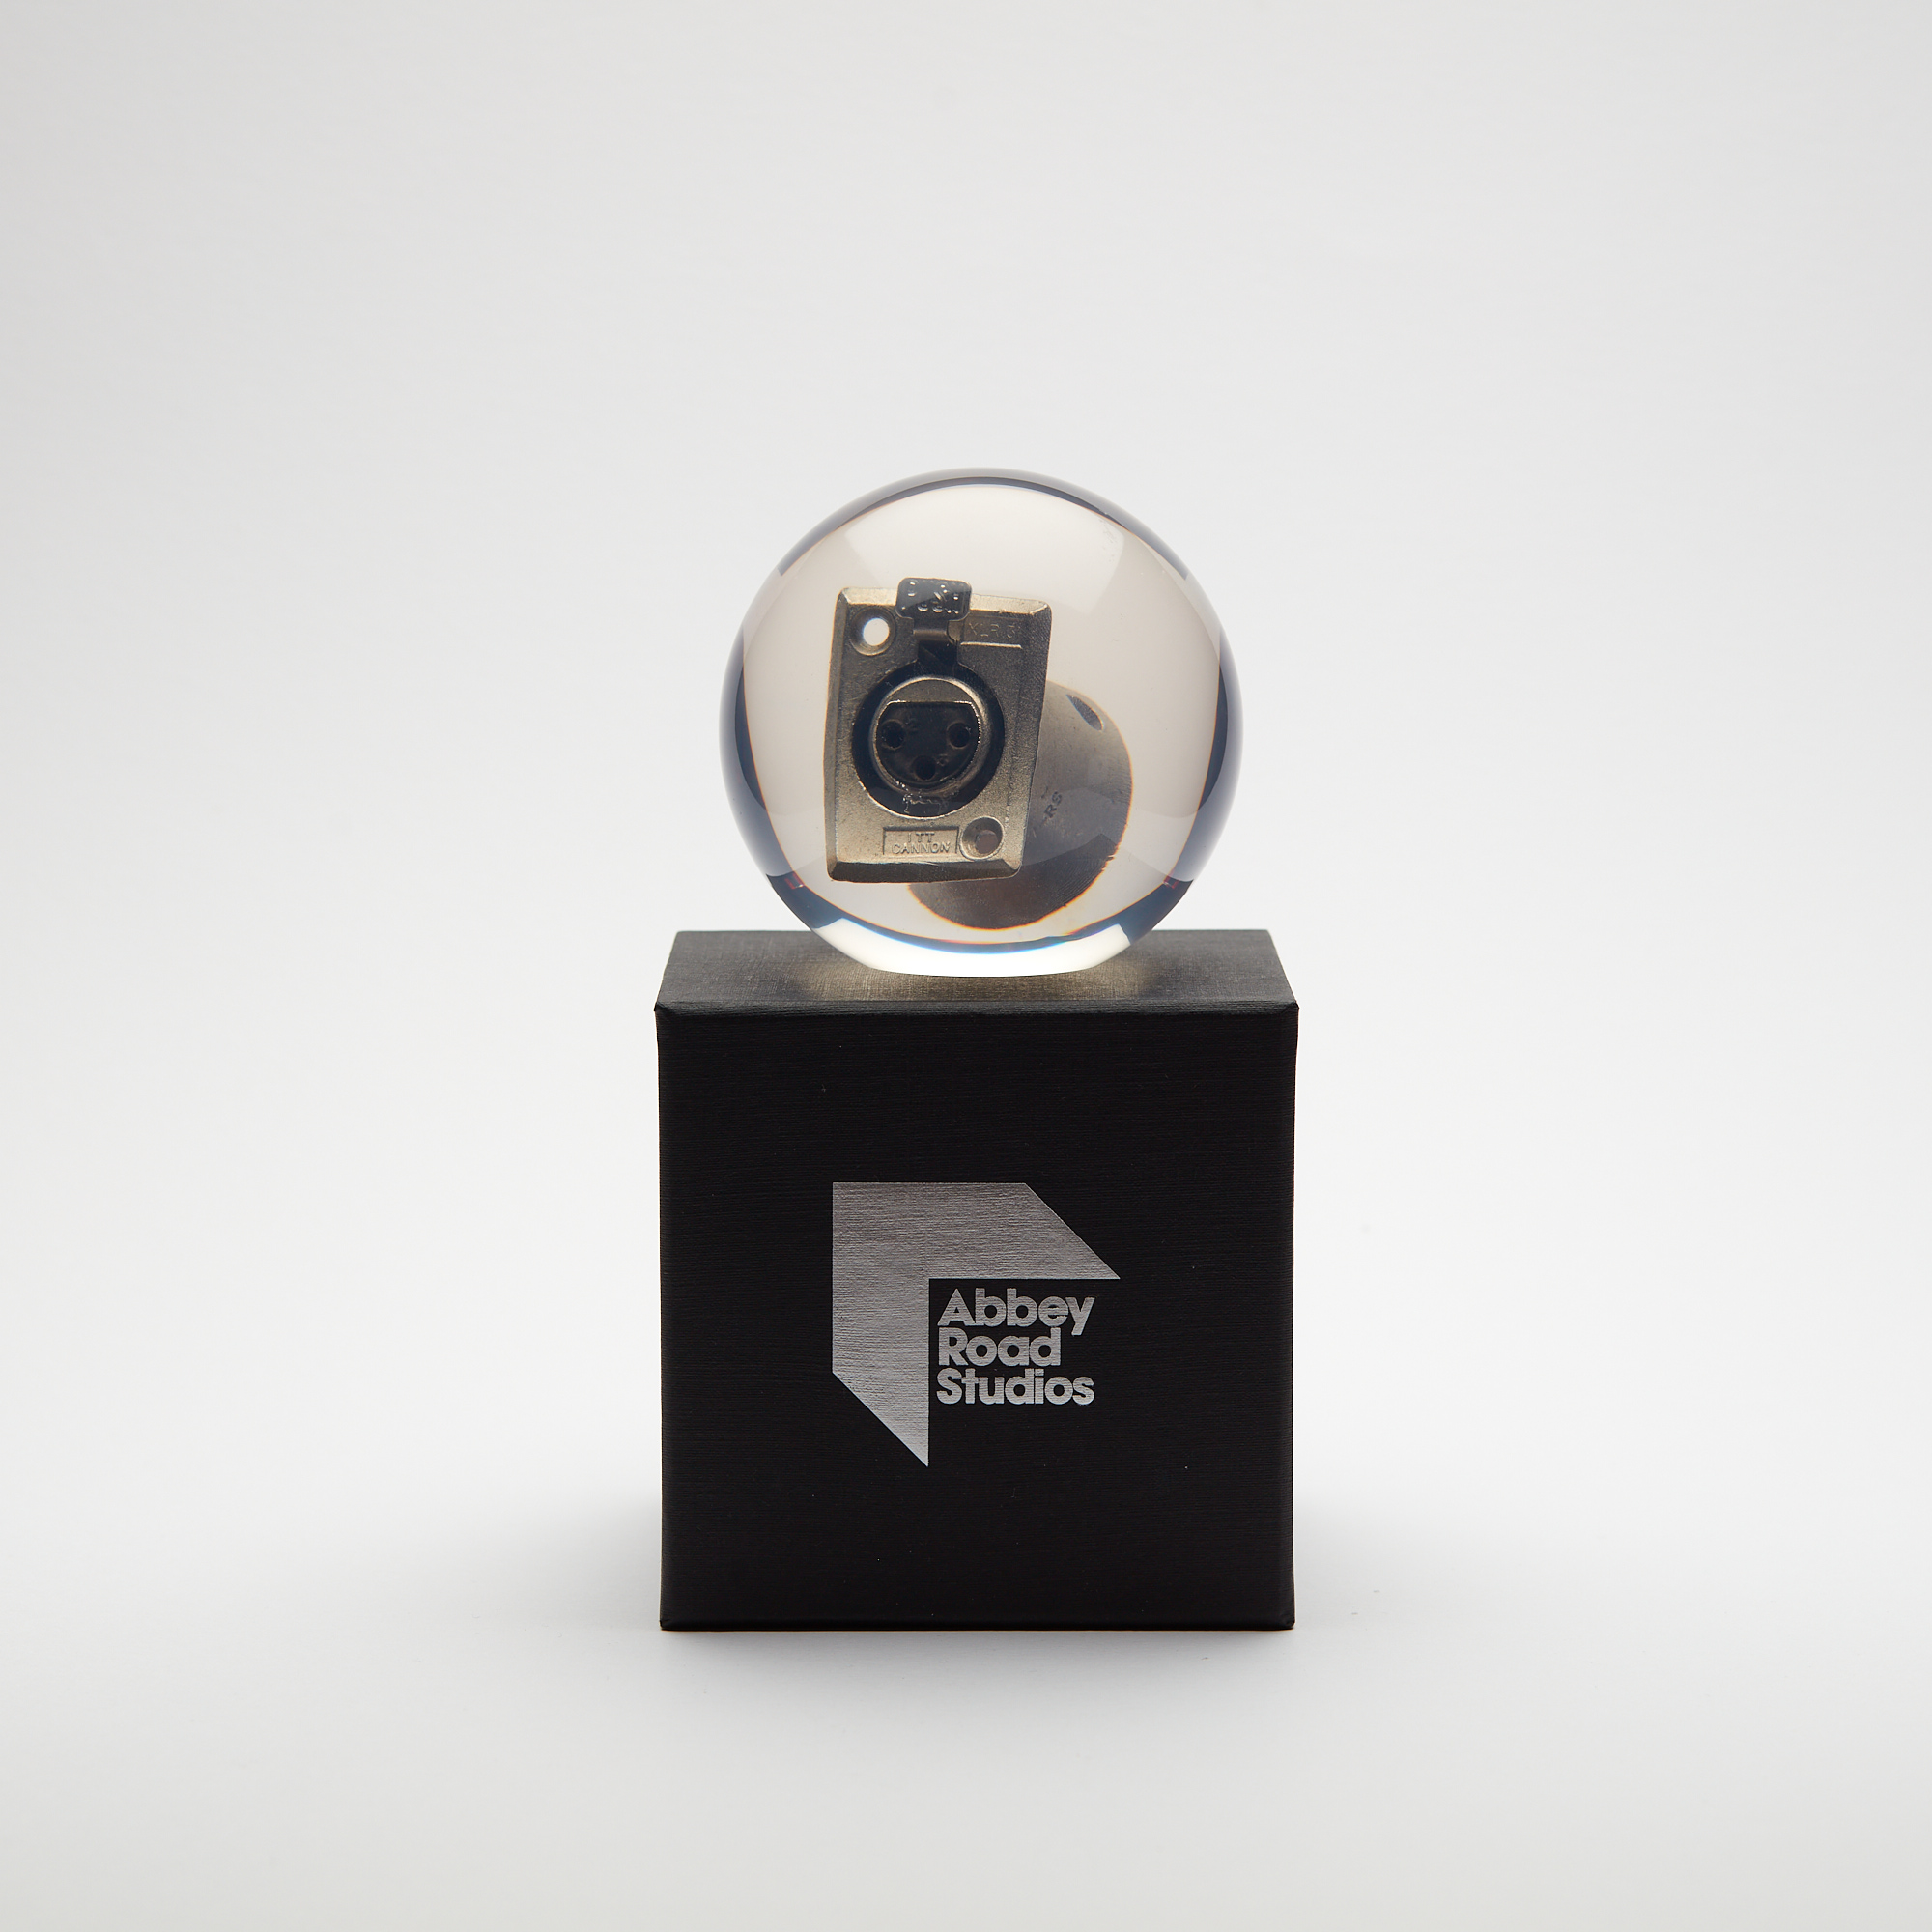 Abbey Road Studios Push Button XLR Connector Paperweight